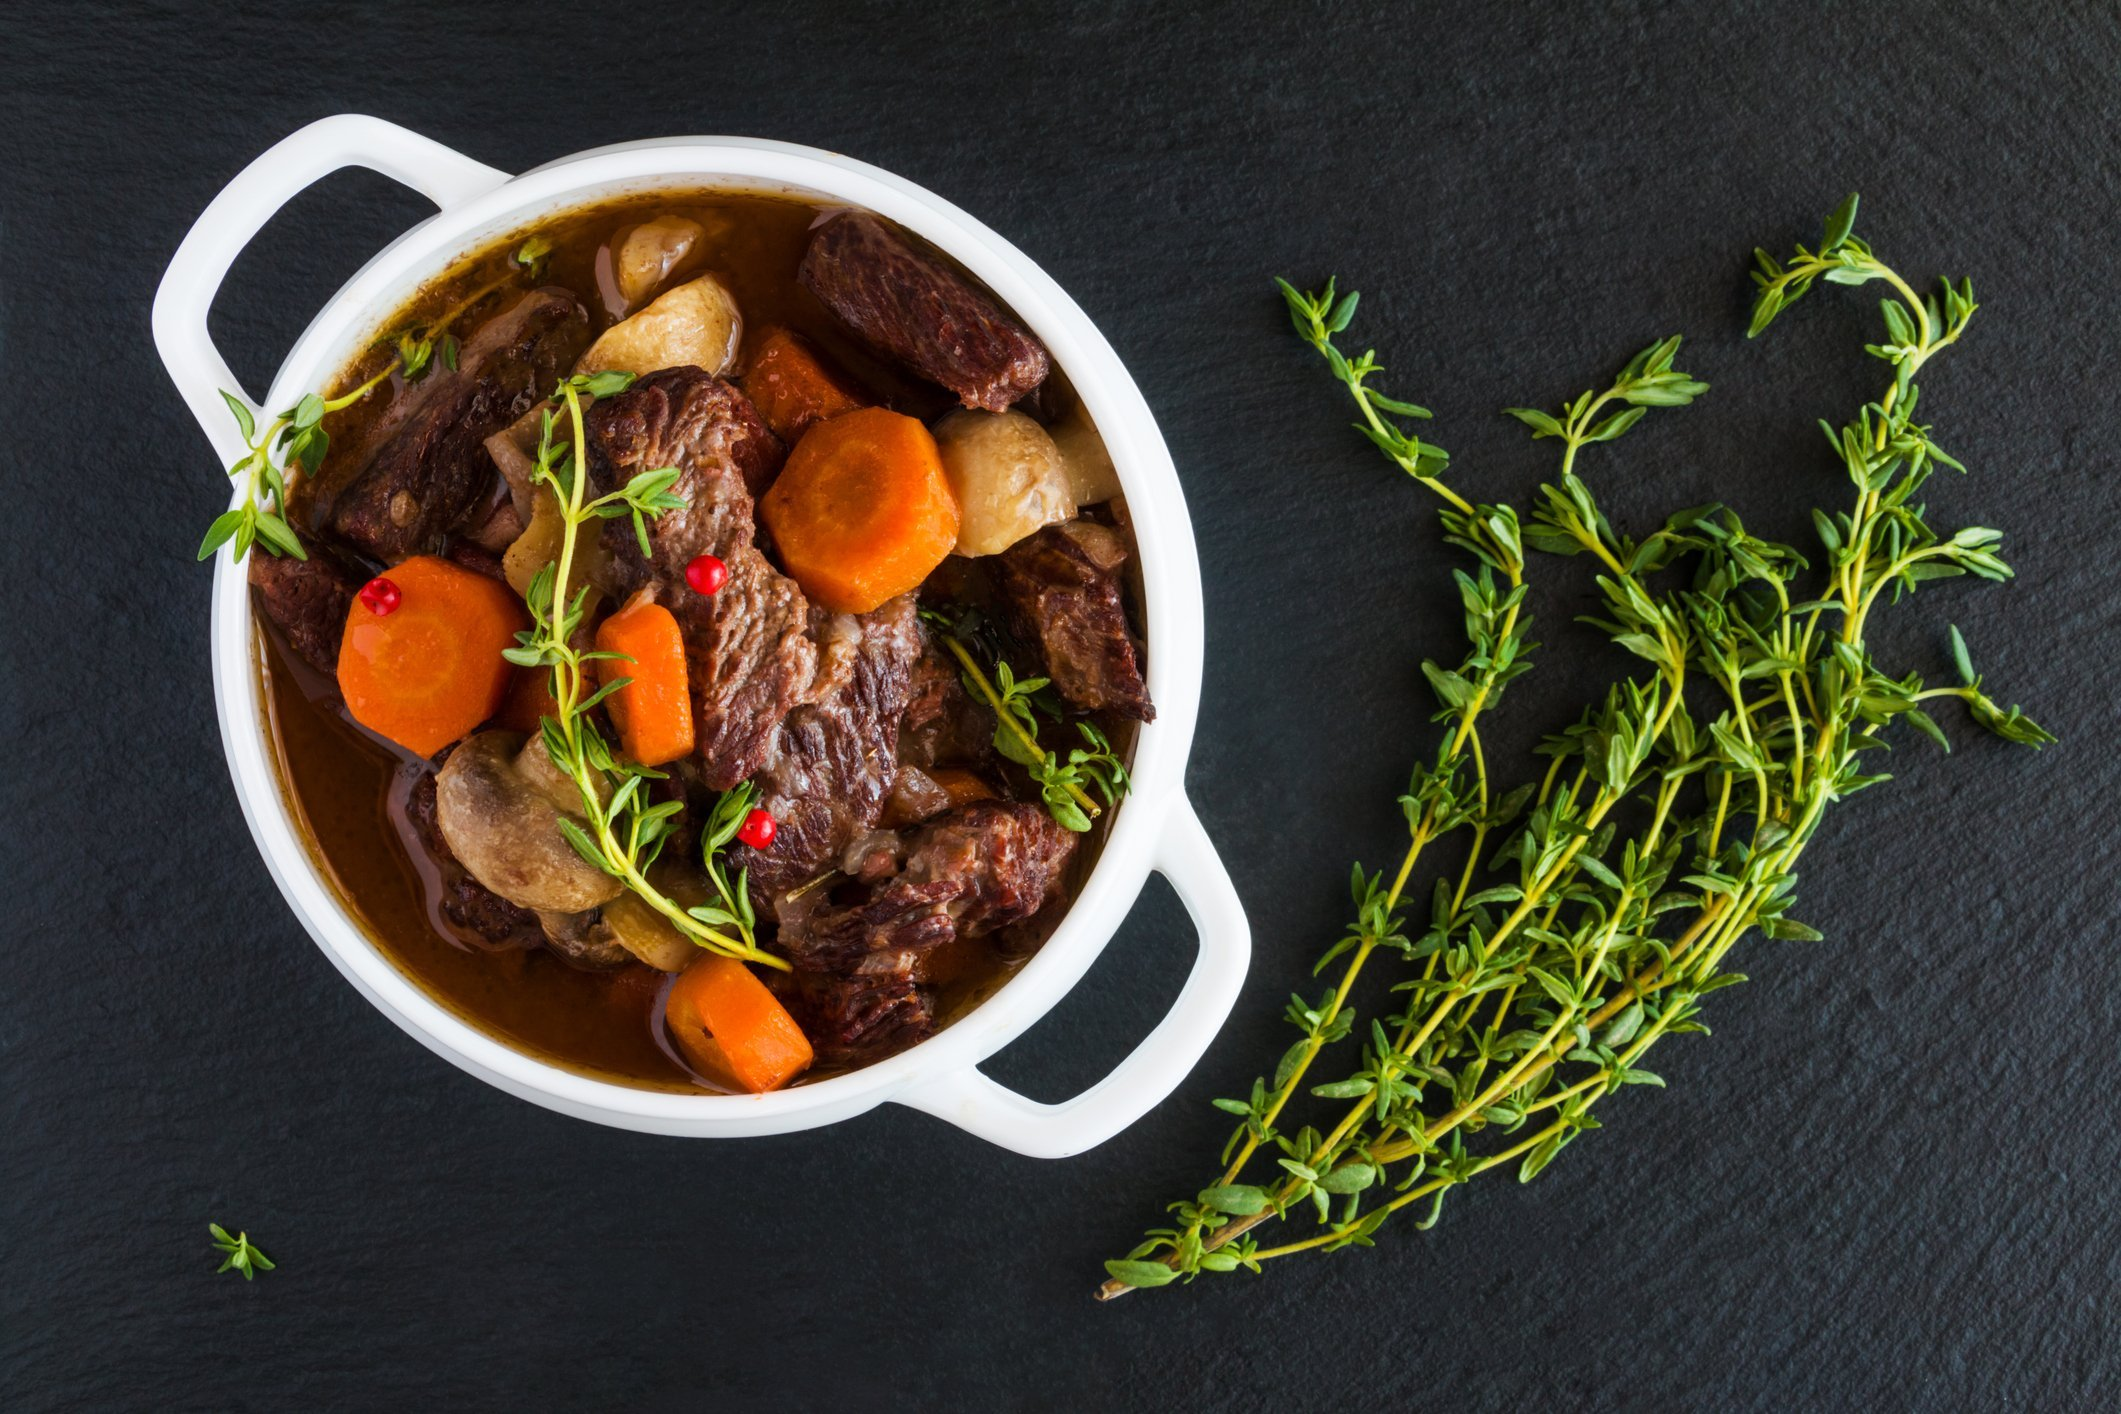 Two Kosher Beef Stew Dinners with Organic Quinoa and Vegetables